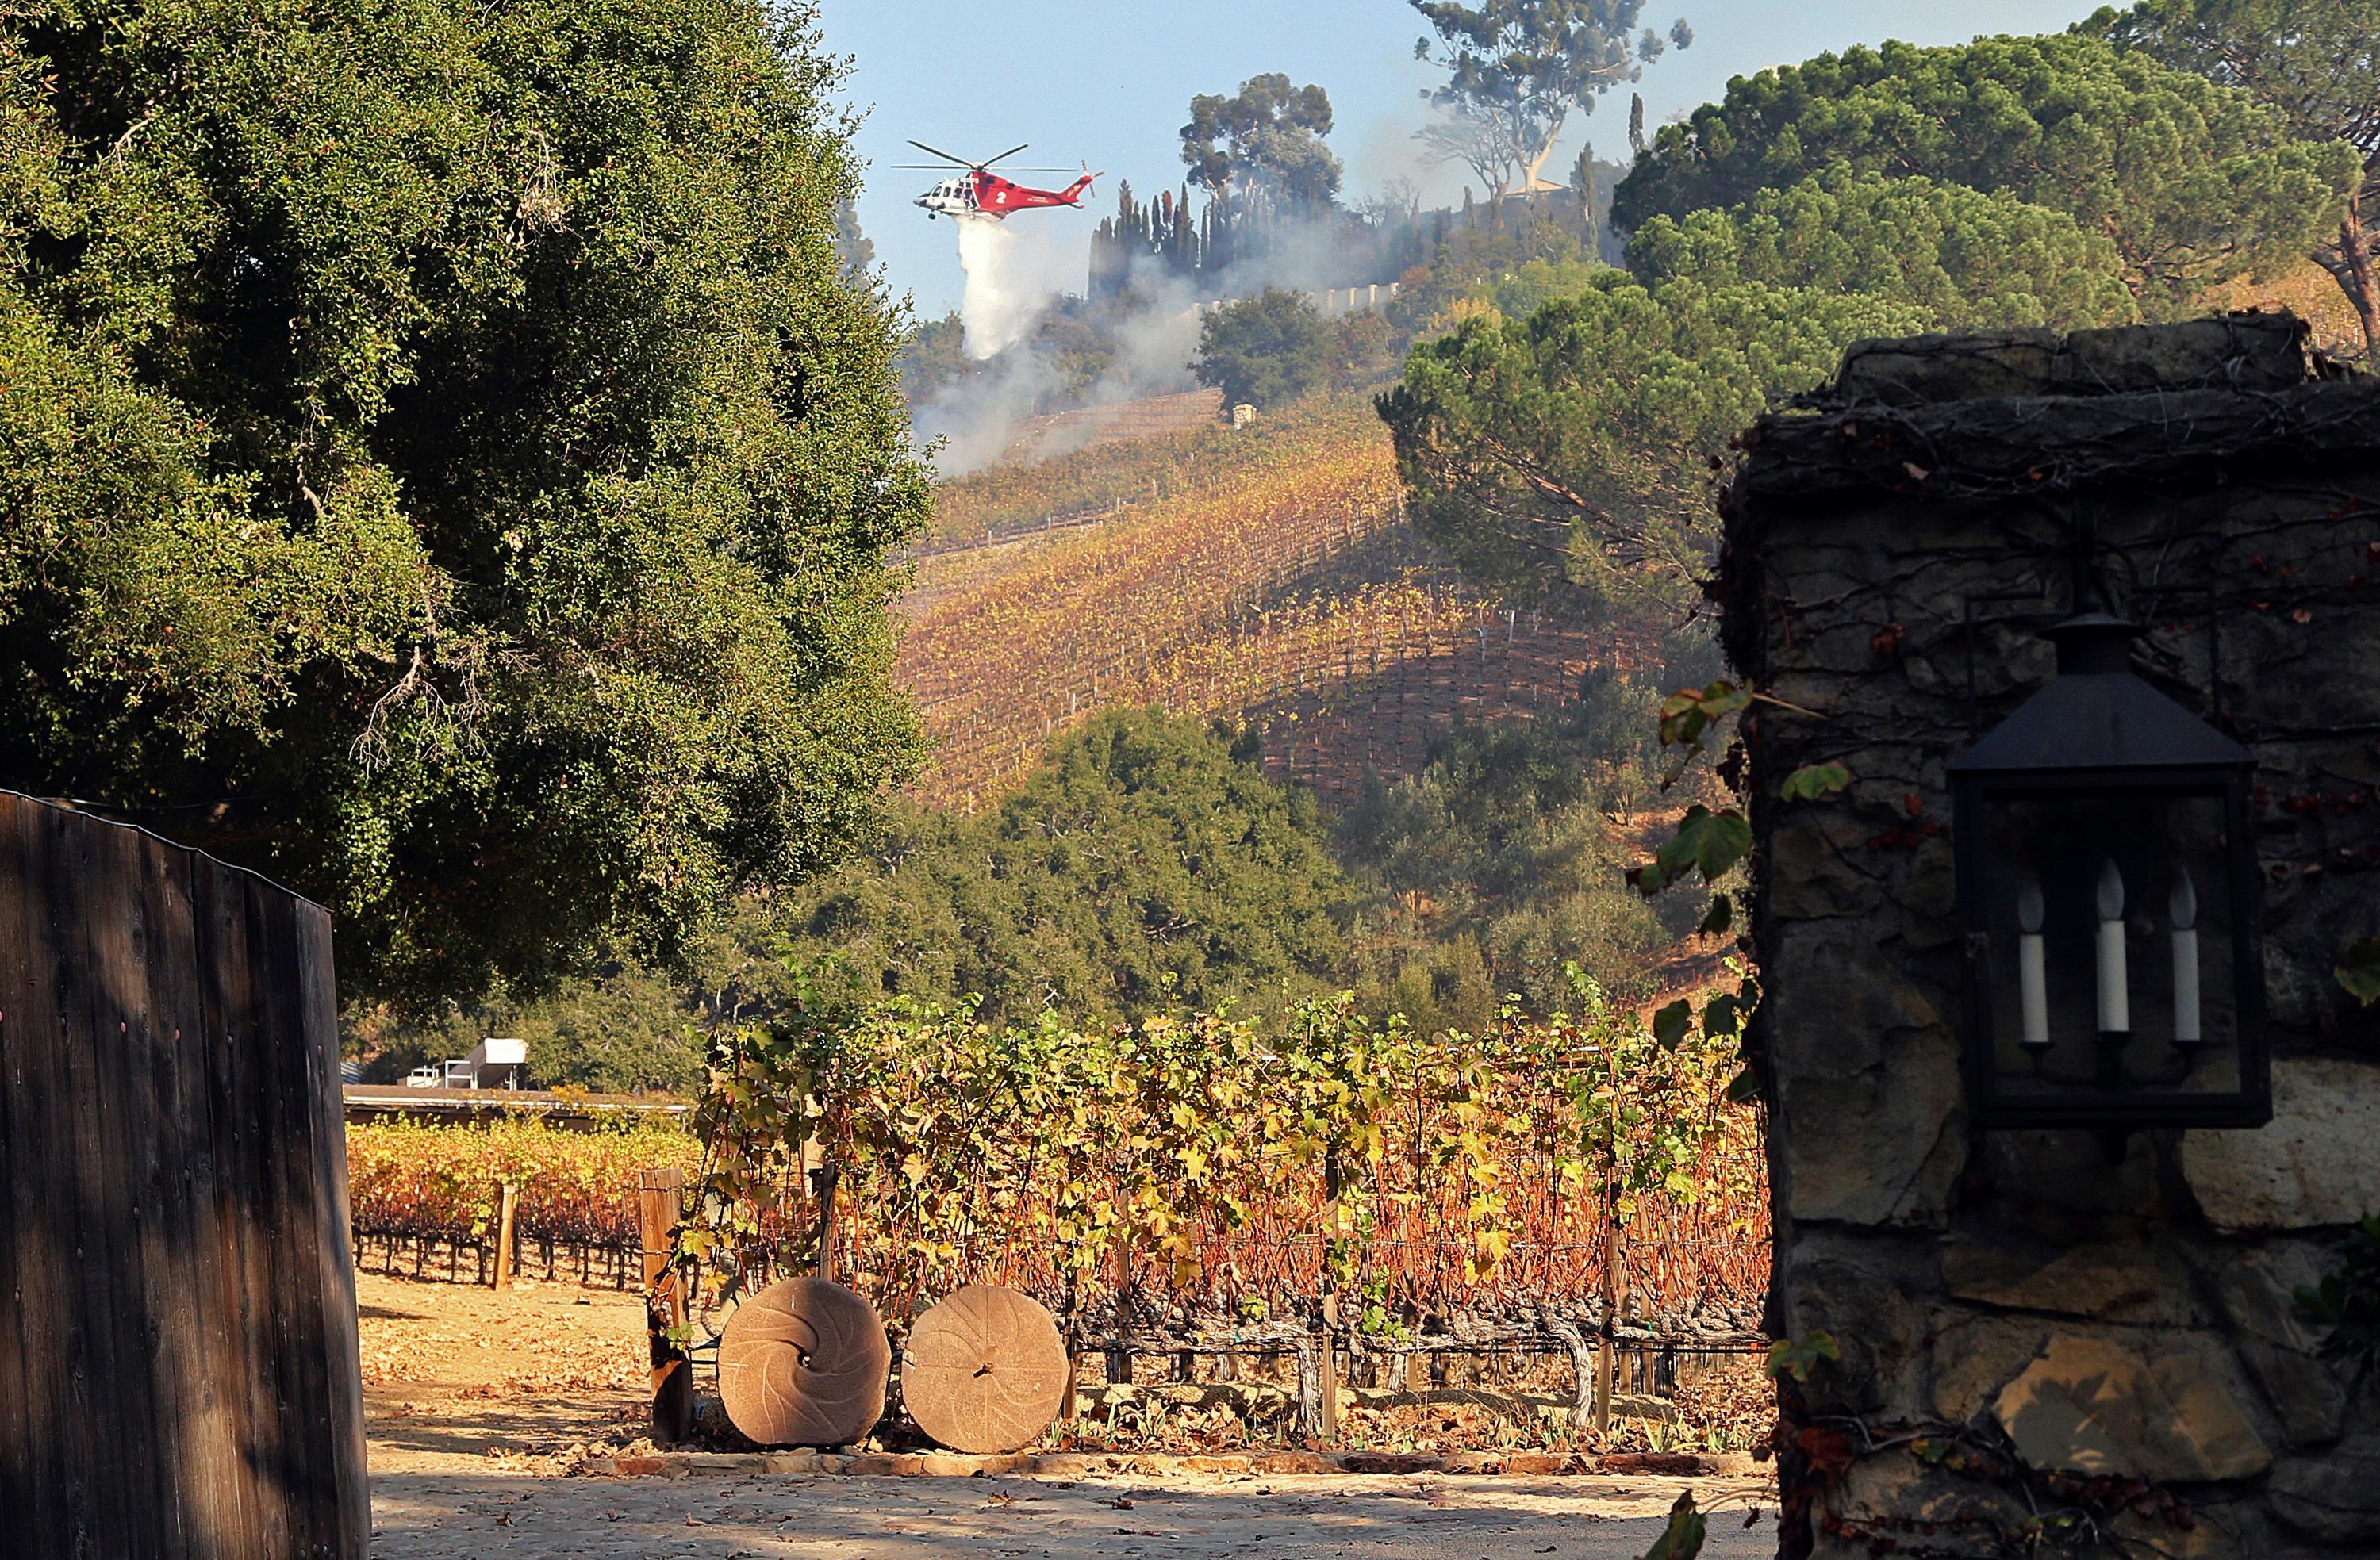 In this Wednesday, Dec. 6, 2017 photo, a Los Angeles Fire Department helicopter makes a water drop on media mogul Rupert Murdoch's 16-acre (6.5-hectare) Moraga Vineyards estate, where about 7 acres (2.8 hectares) of vines appeared to have been damaged, a spokeswoman said.  (AP Photo/Reed Saxon)